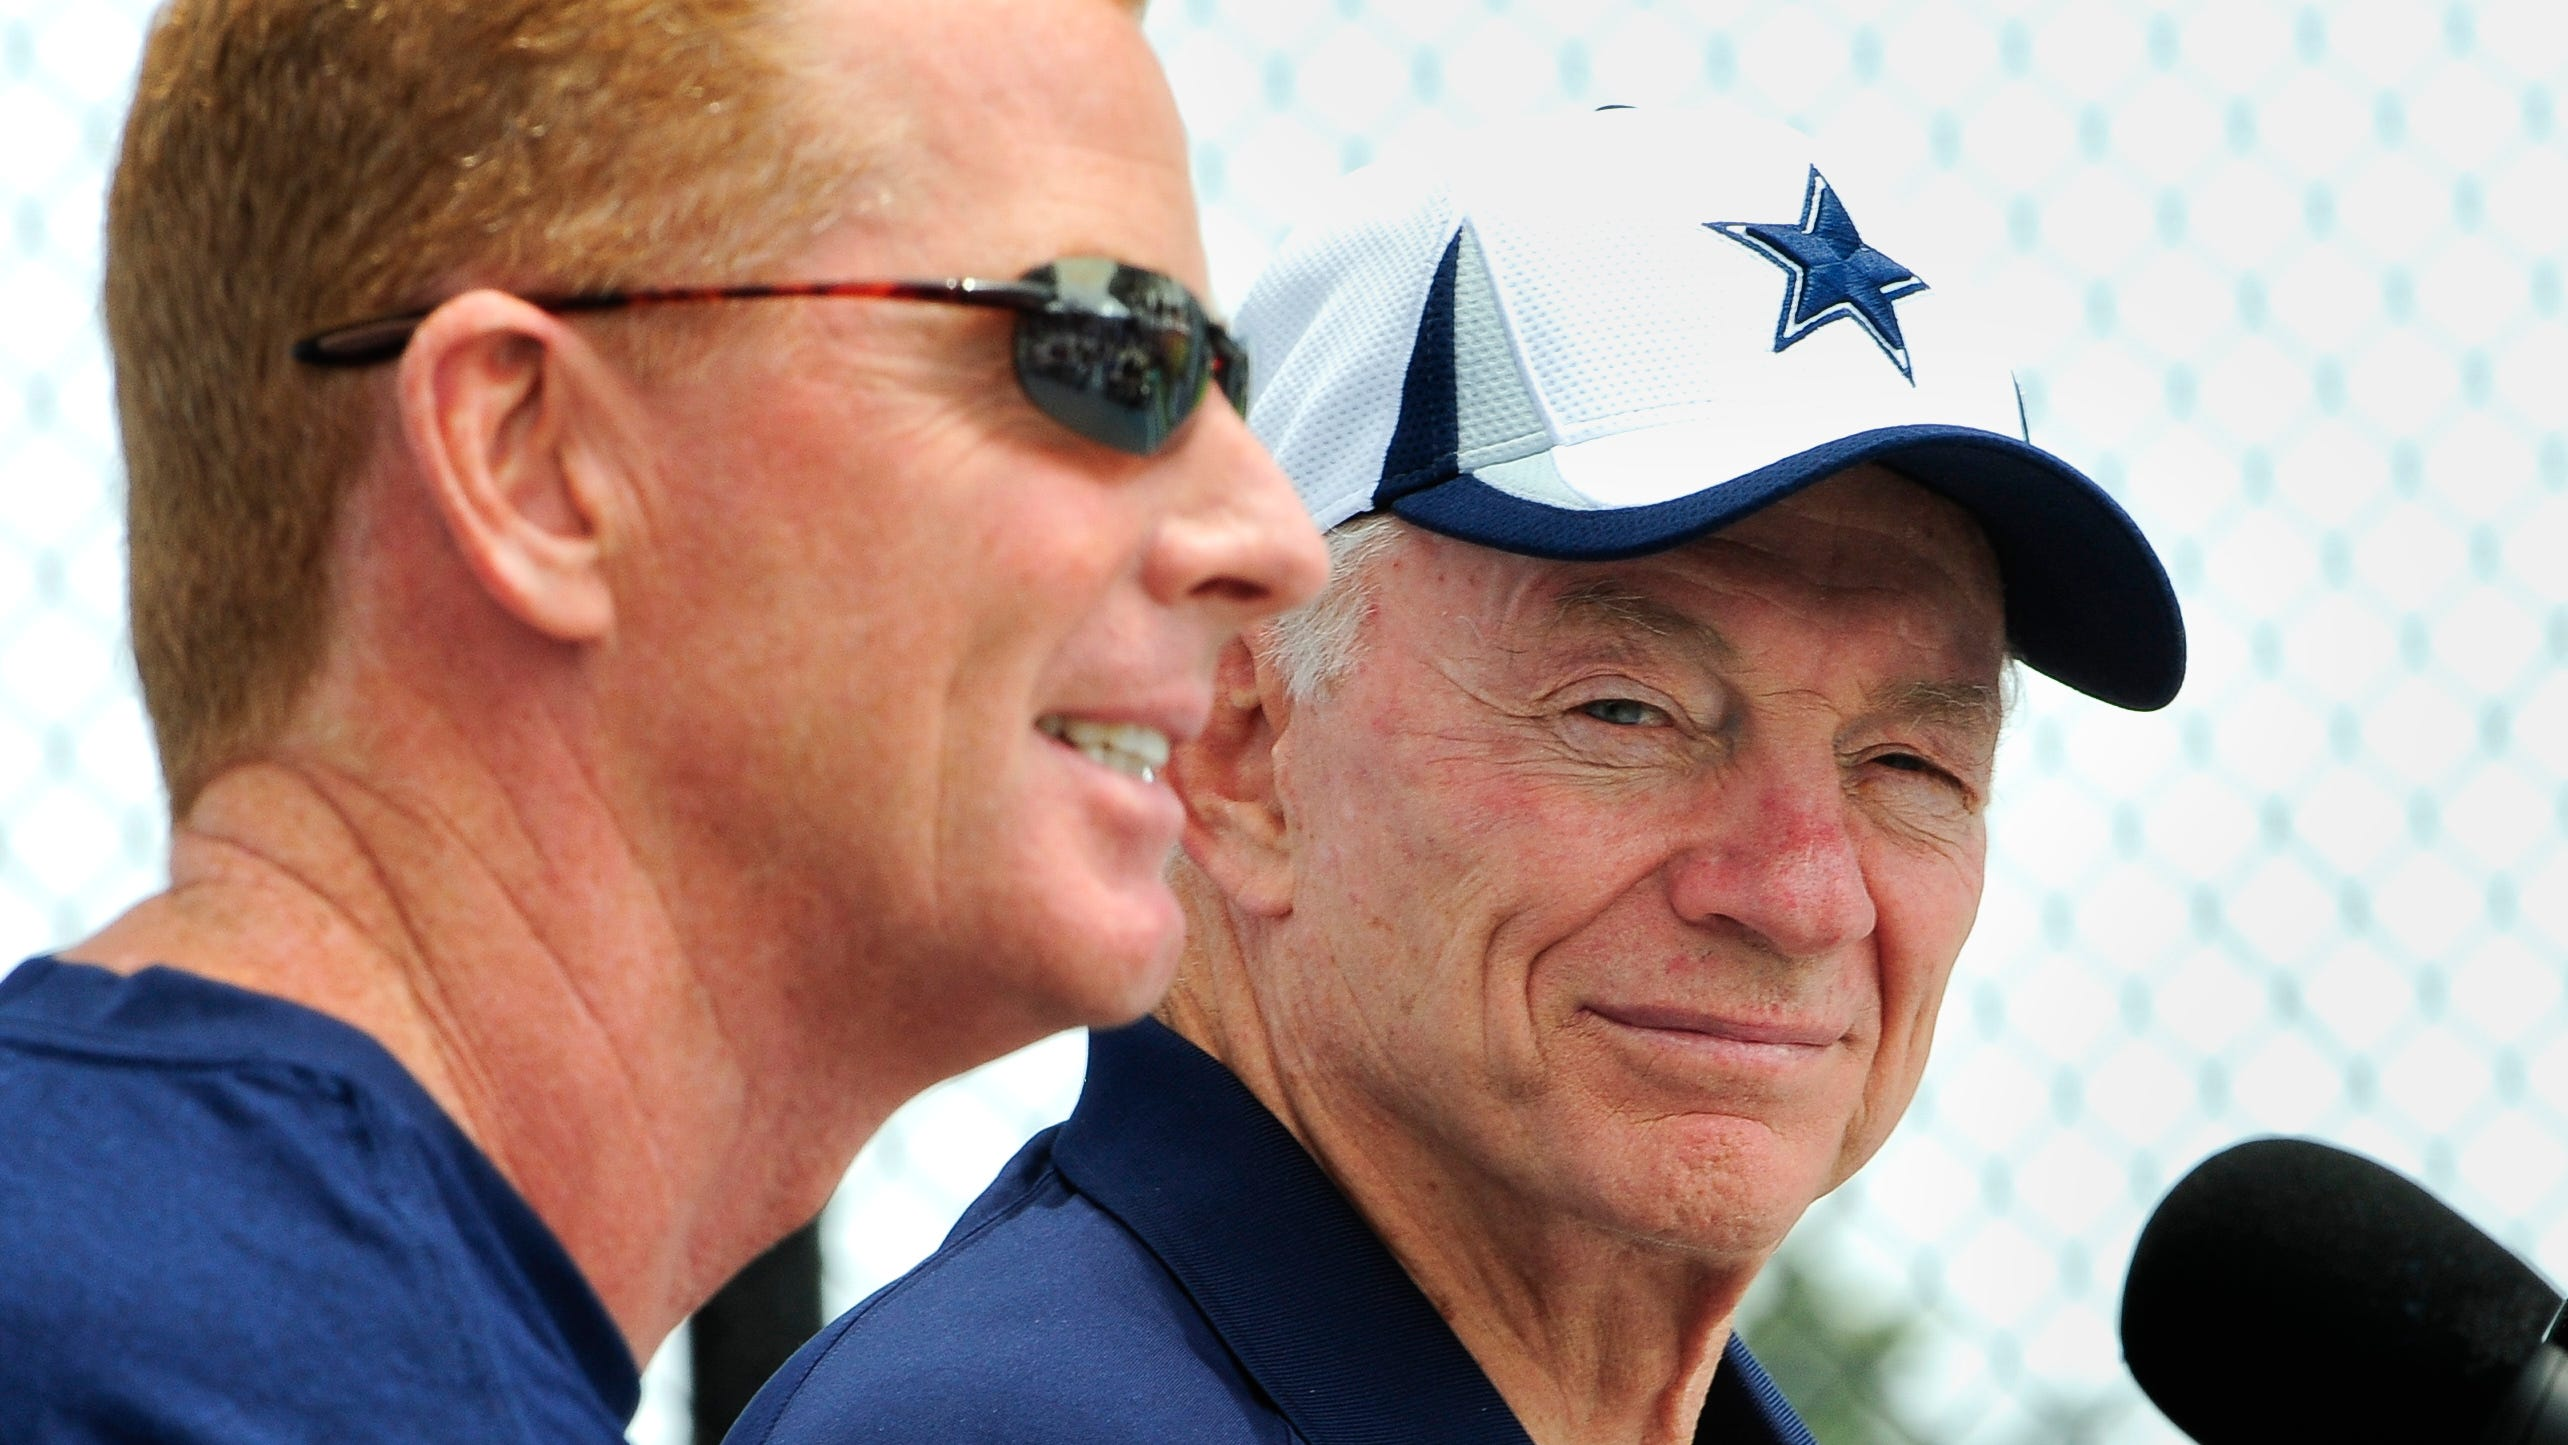 Jerry Jones stumps for Cowboys coach Jason Garrett: 'He is absolutely the real deal'